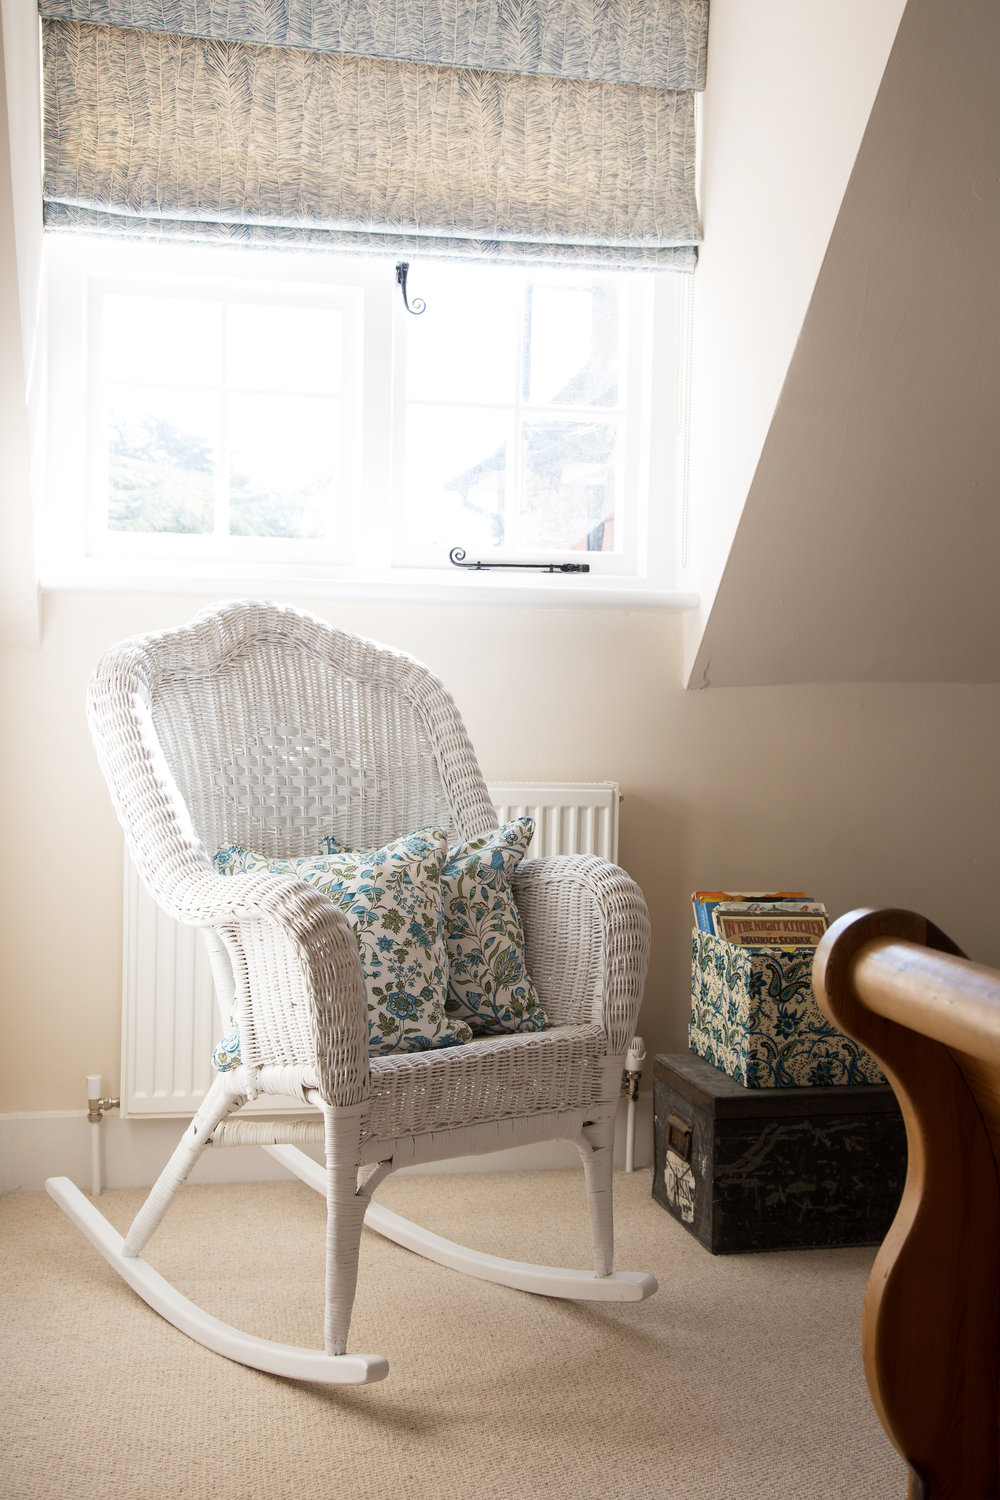 Wicker Rocking Chair in a Bright Bedroom of a Grade II listed home in Battle East Sussex – Interior Design by Smartstyle Interiors